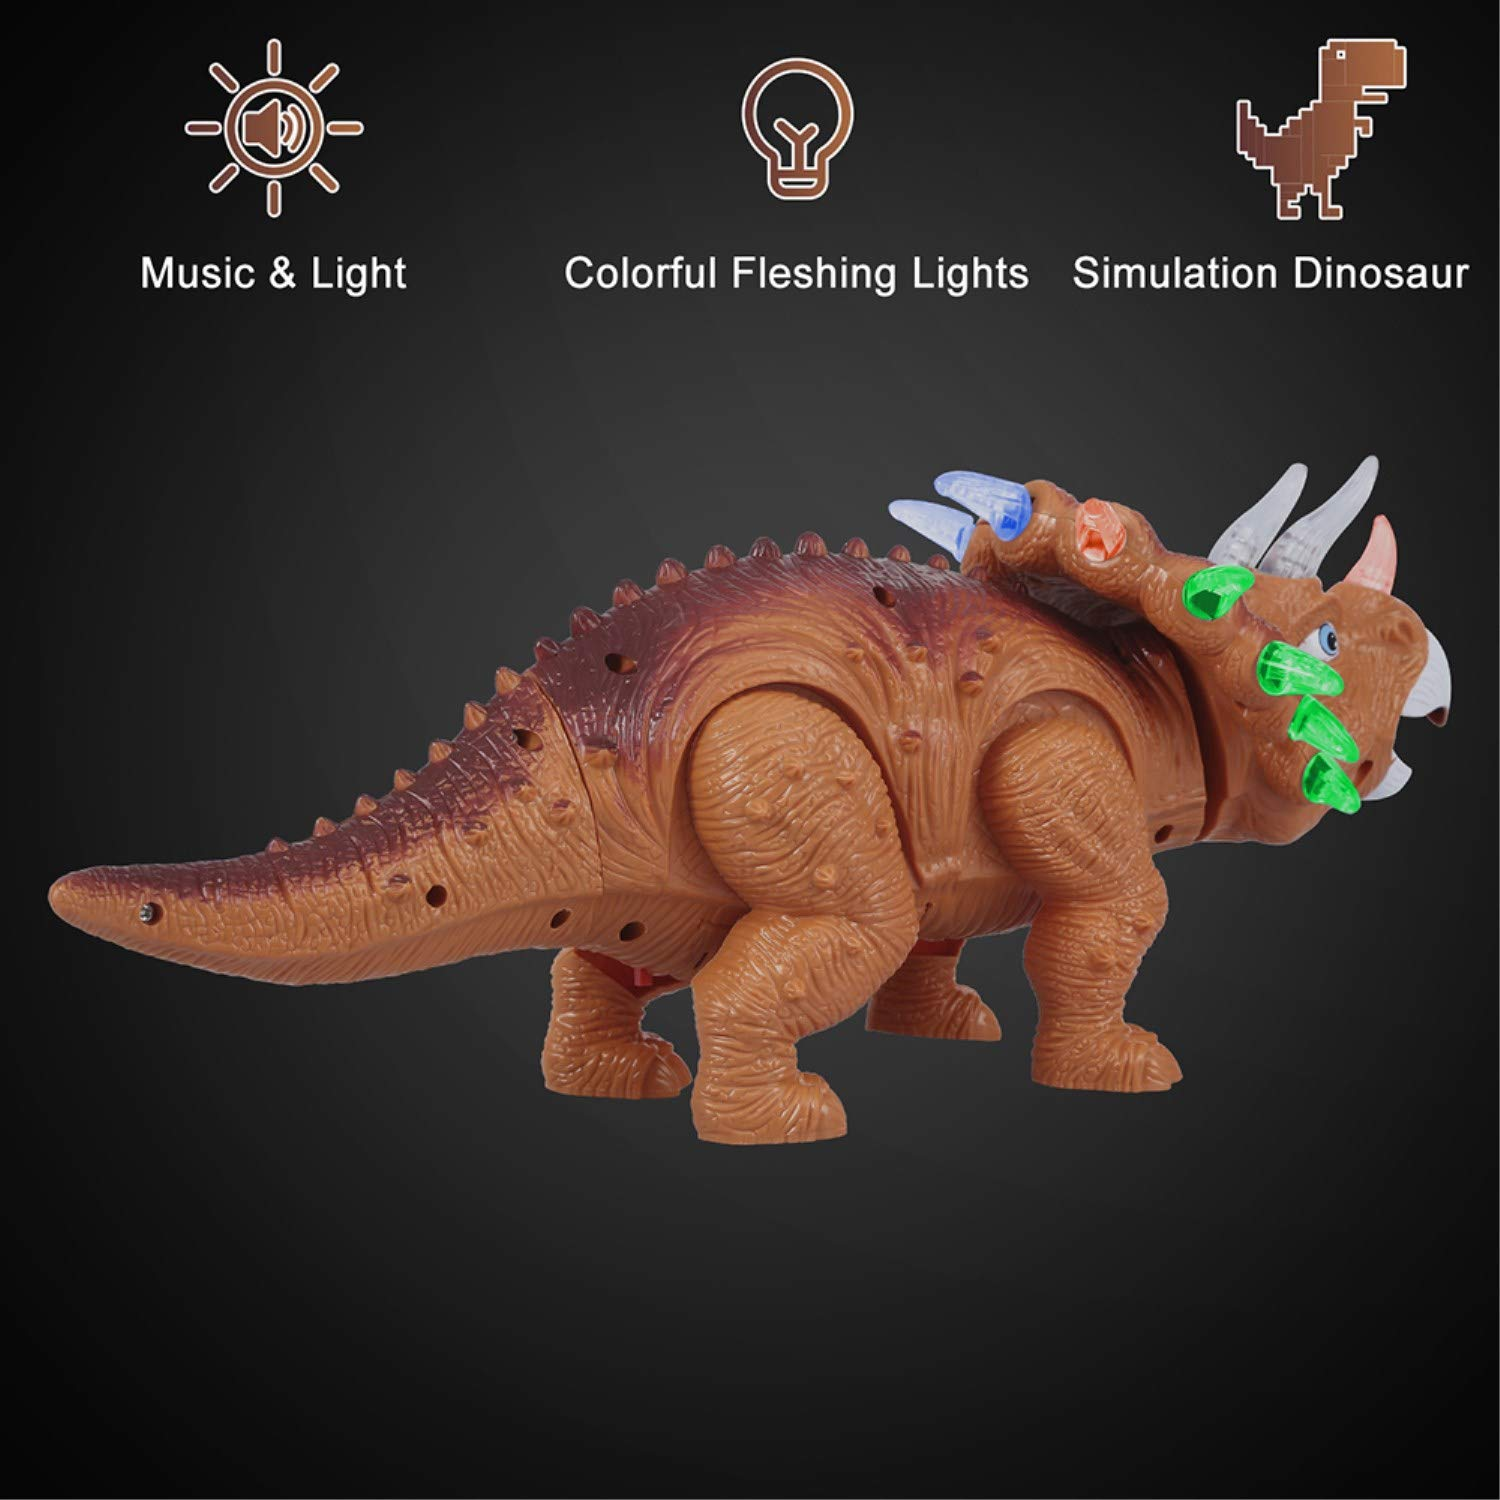 WomToy Walking Dinosaur Toys, Triceratops Dinosaur Toy Figure for Boys & Girls for Kids with Amazing Roar Sounds, Lights & Movement by WomToy (Image #2)